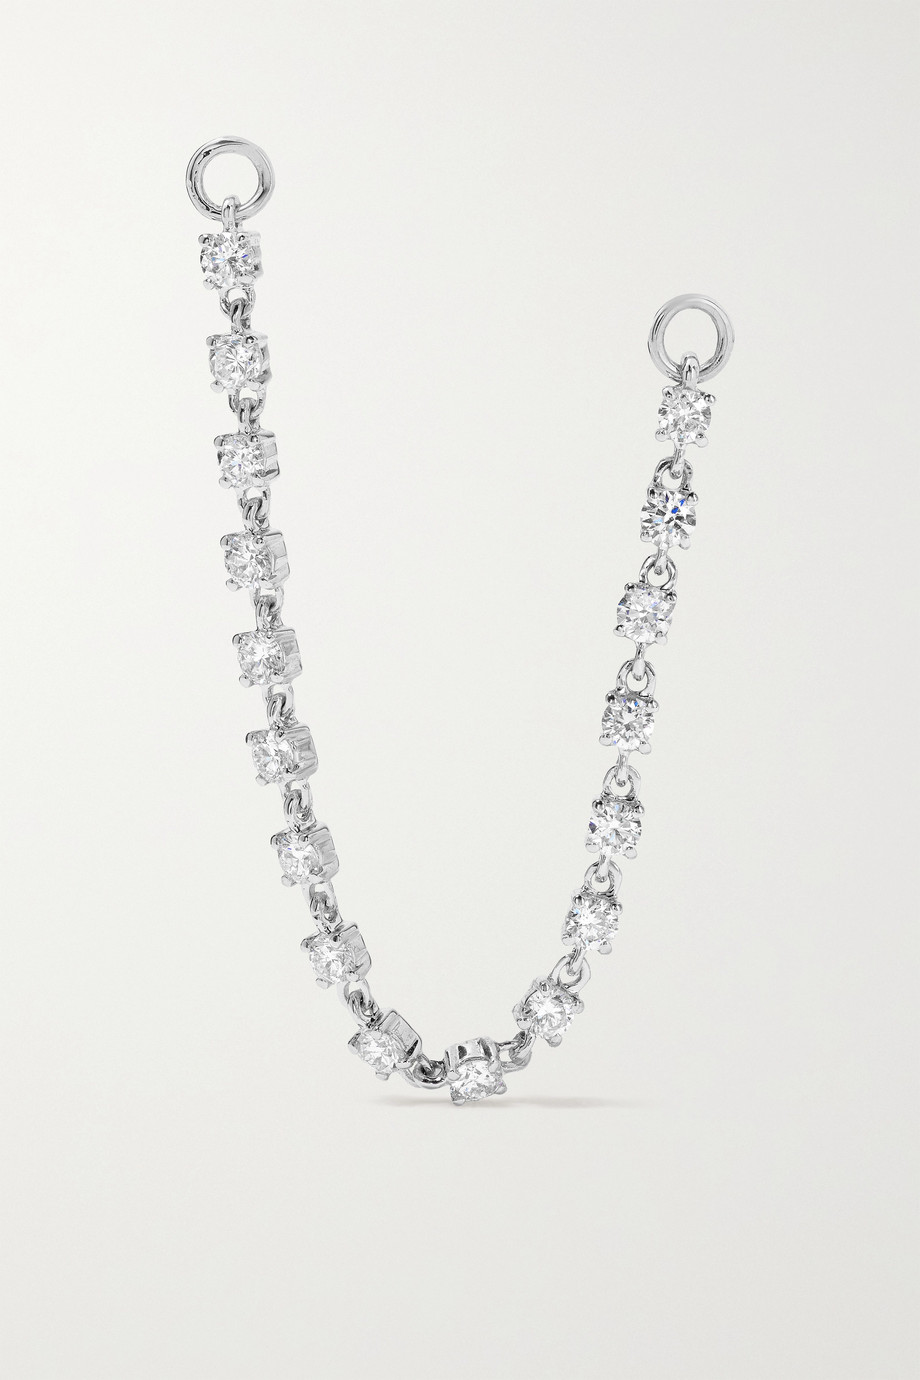 Anita Ko 18-karat white gold diamond earring chain